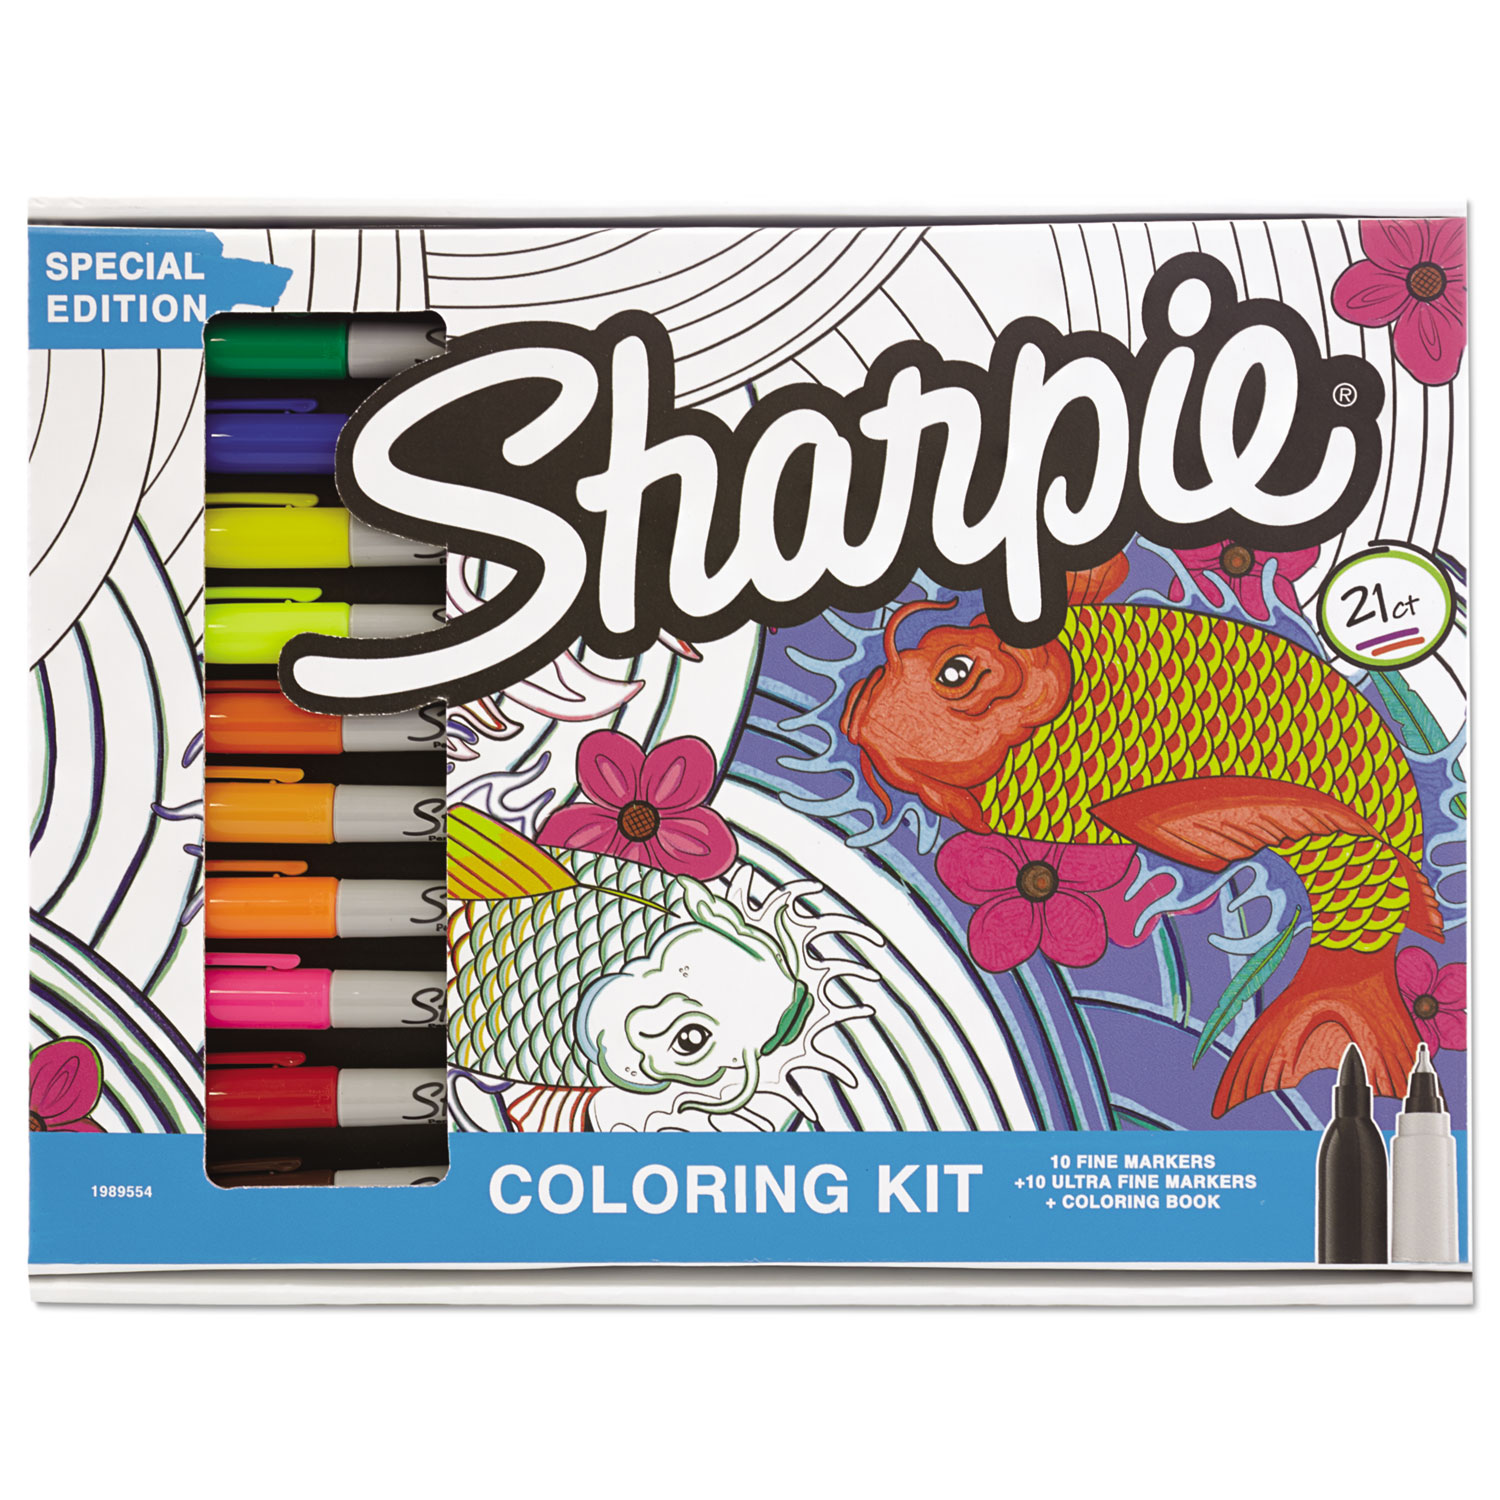 Adult Coloring Kit by Sharpie® SAN1989554 - OnTimeSupplies.com